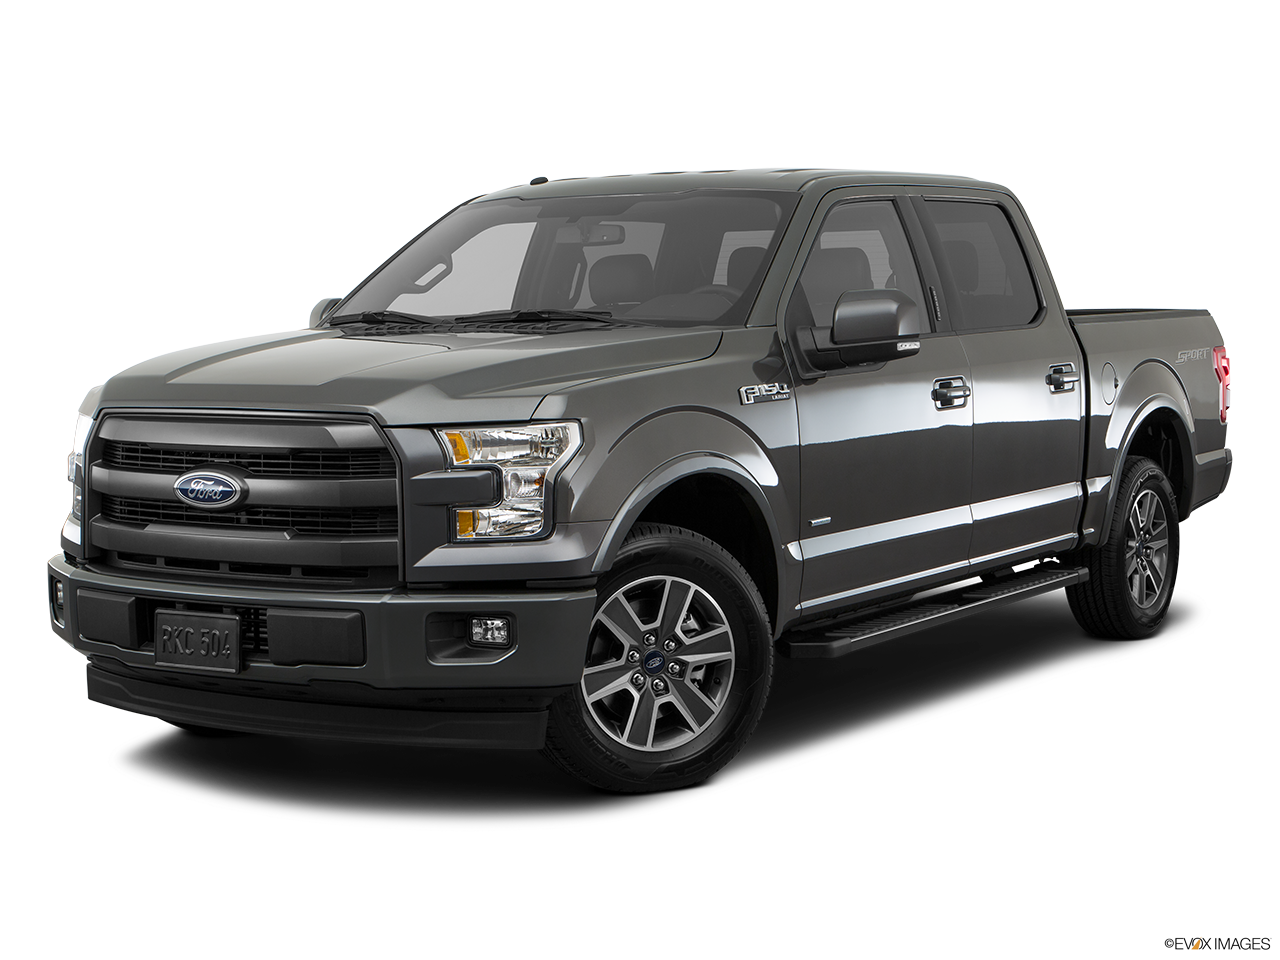 Test Drive A 2017 Ford Super Duty at Galpin Ford in Sacramento